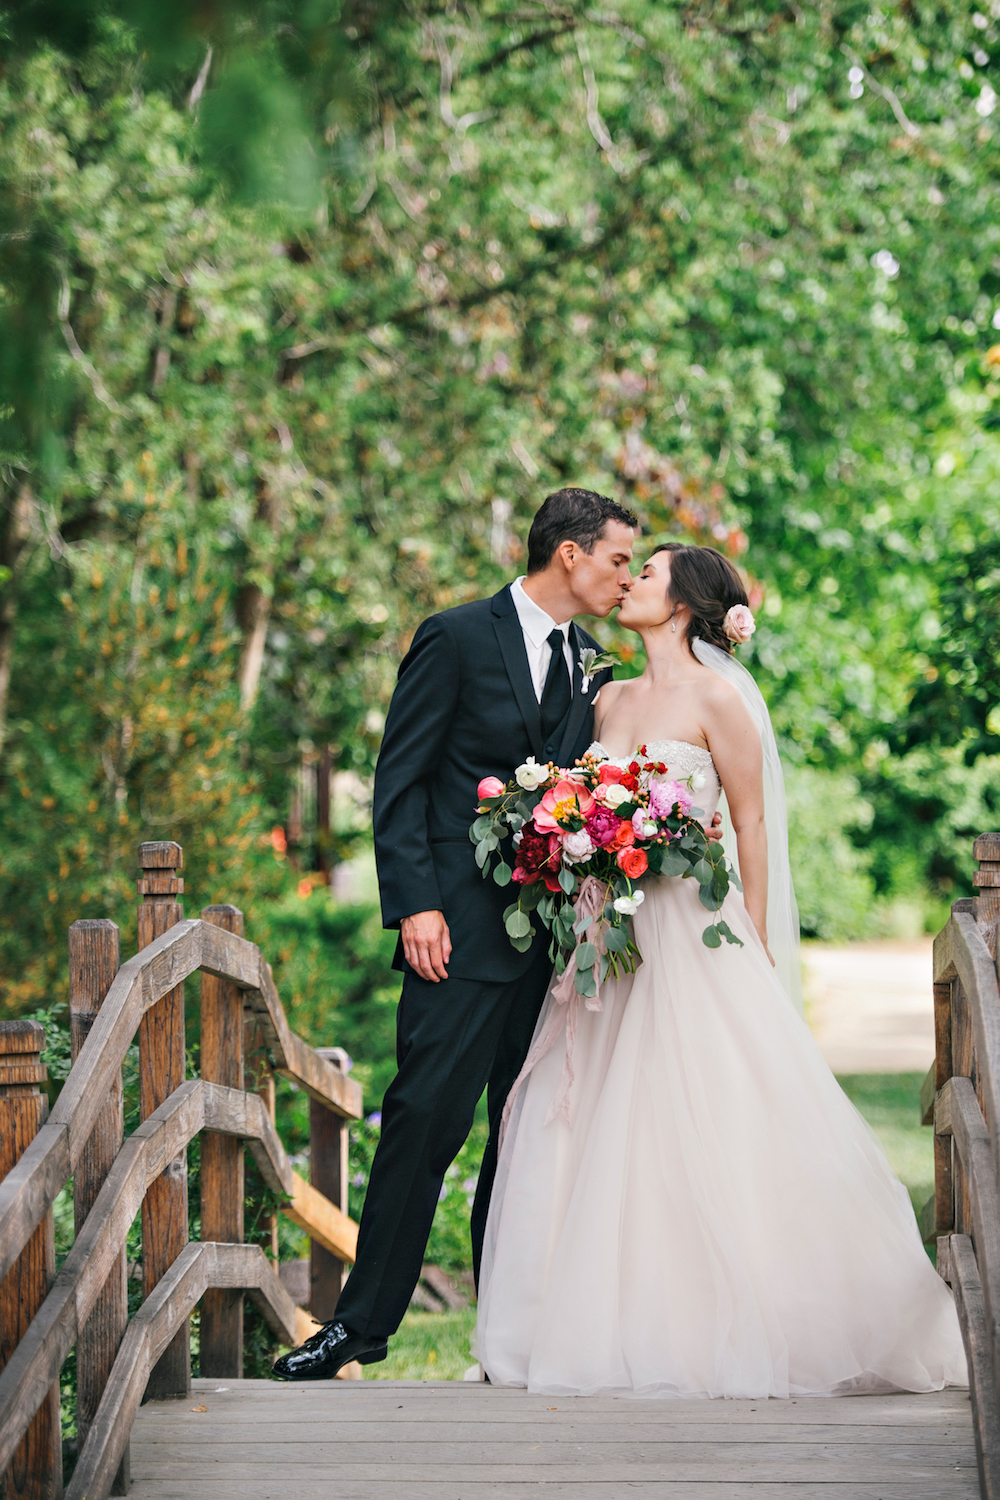 Ira and Lucy Wedding Planner | Double Take Photography Boise, ID